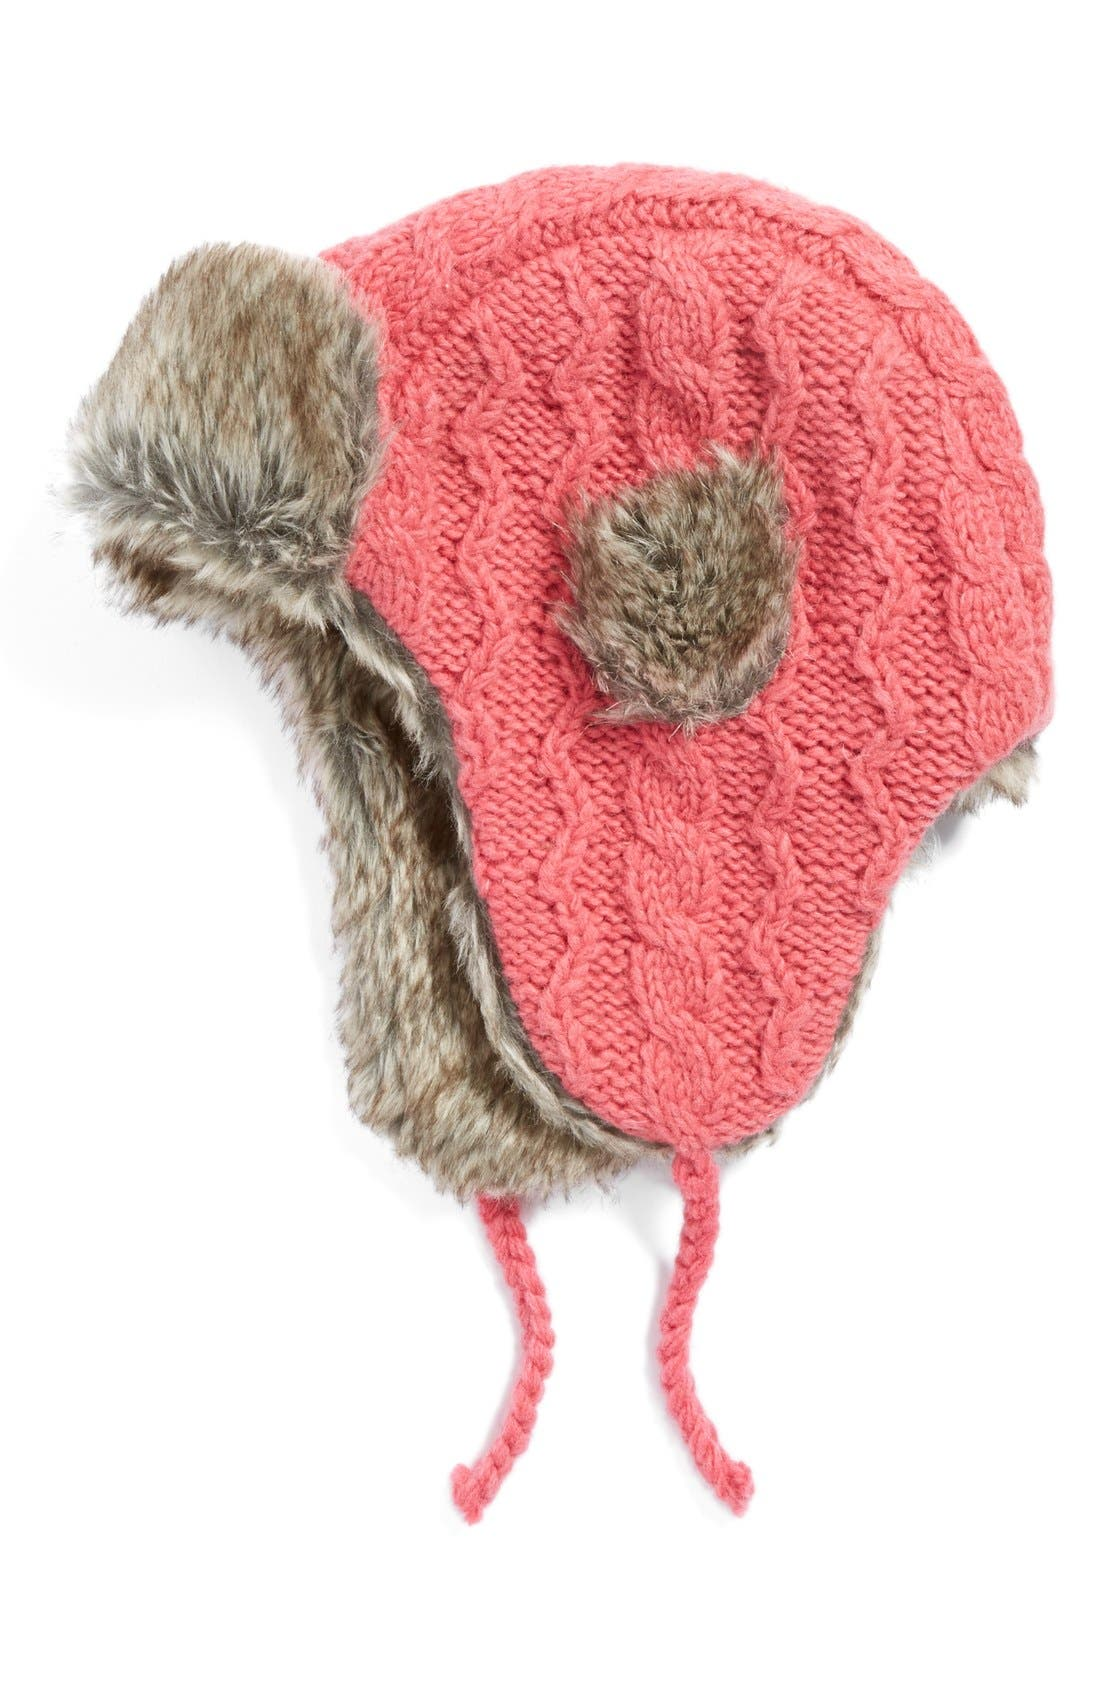 Alternate Image 1 Selected - NirvannaDesigns Cable Knit Ear Flap Hat with FauxFur Trim